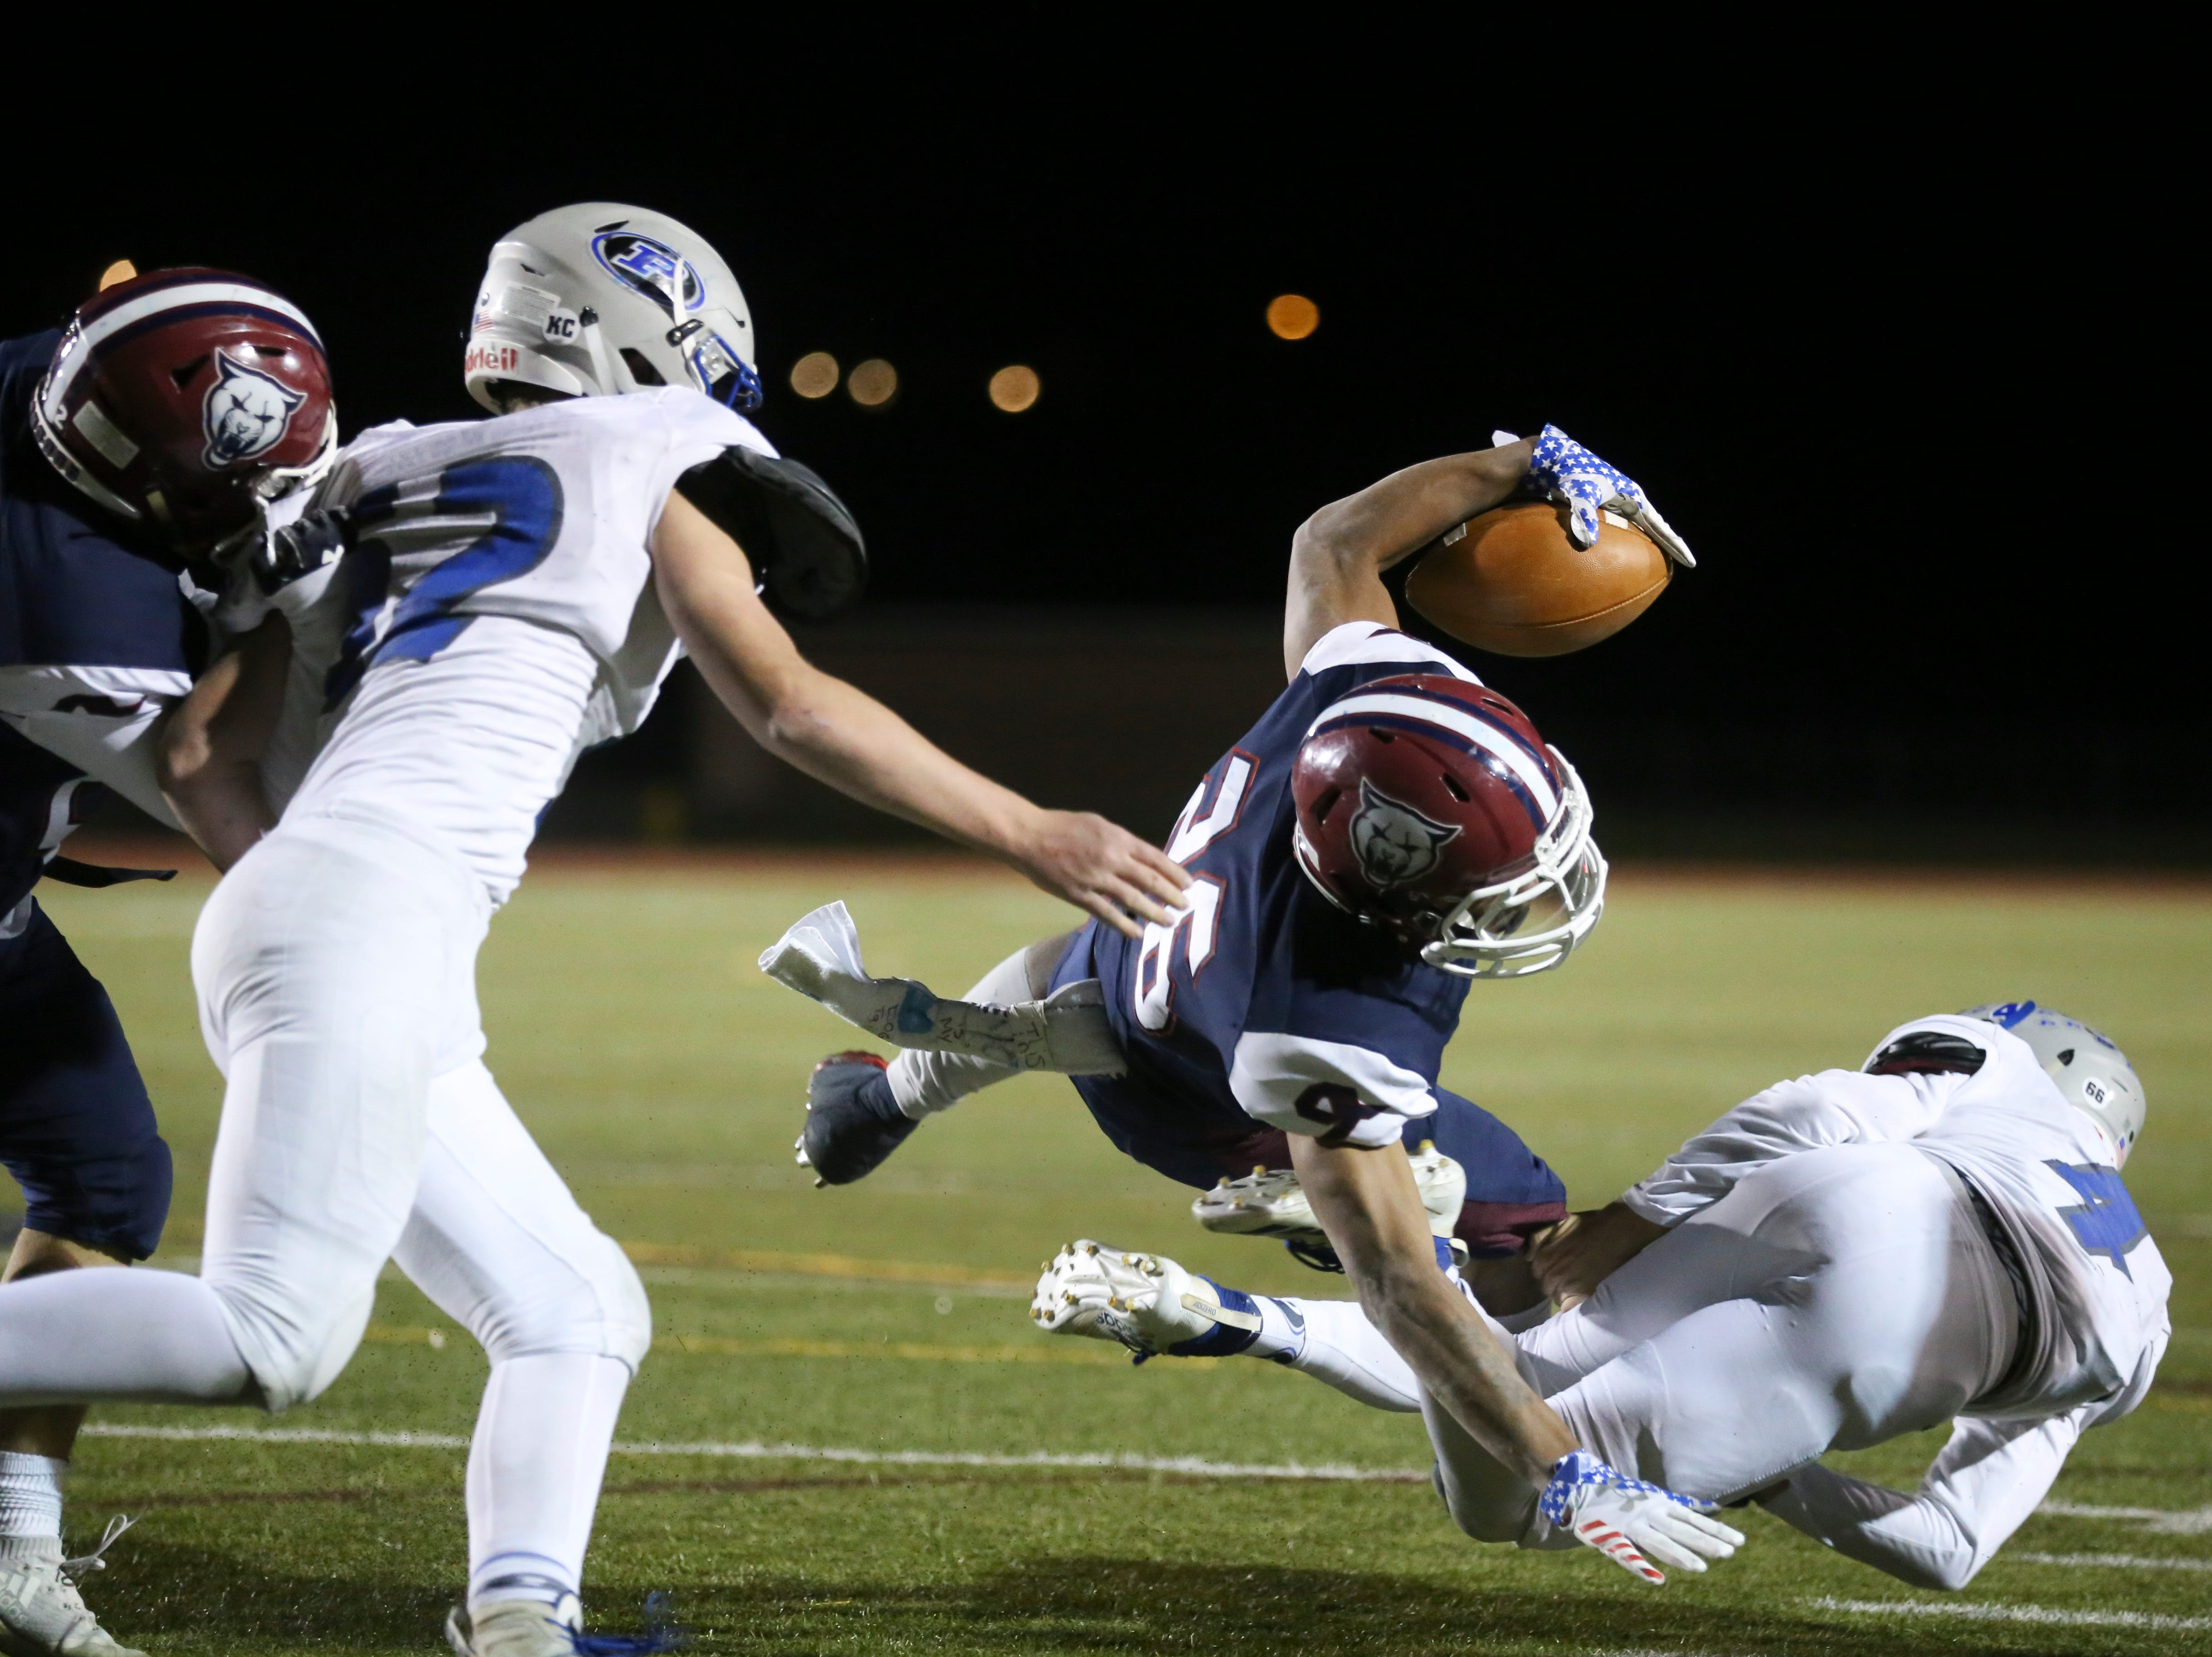 Cherokee Trail High School's Ahmarion Shead dives for the endzone against Poudre High School on Friday evening.